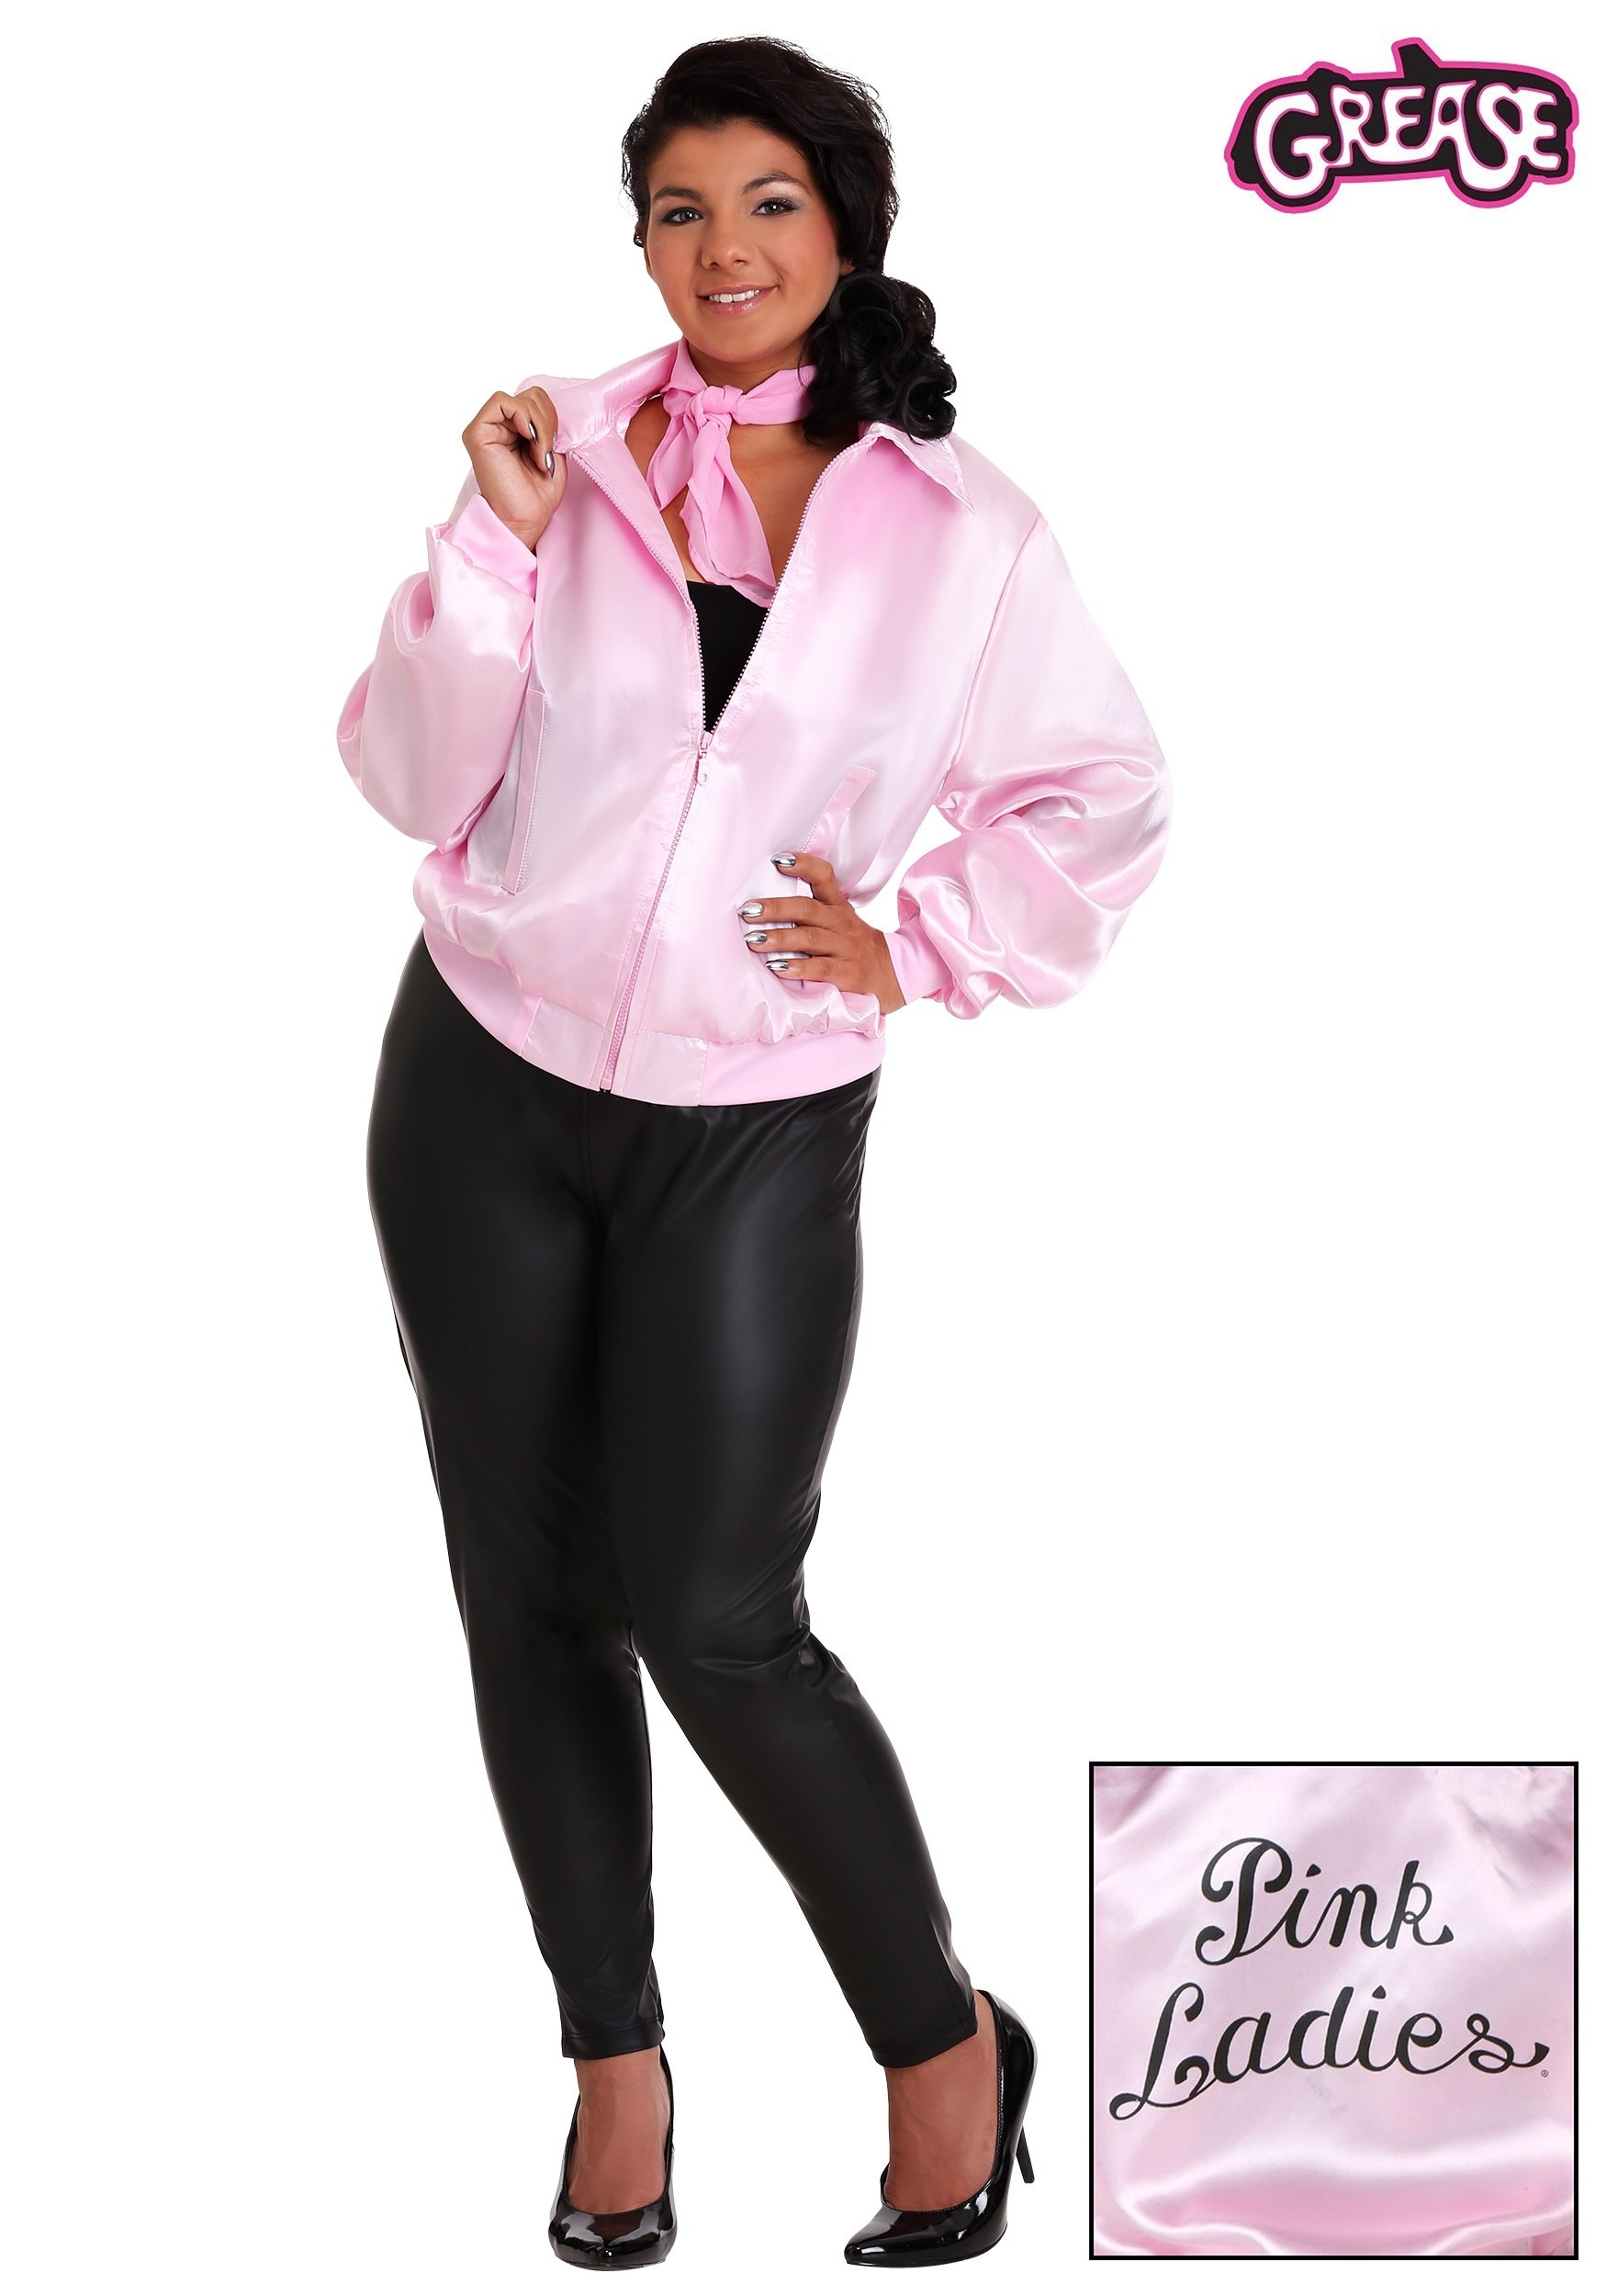 Grease Plus Size Pink Ladies Jacket